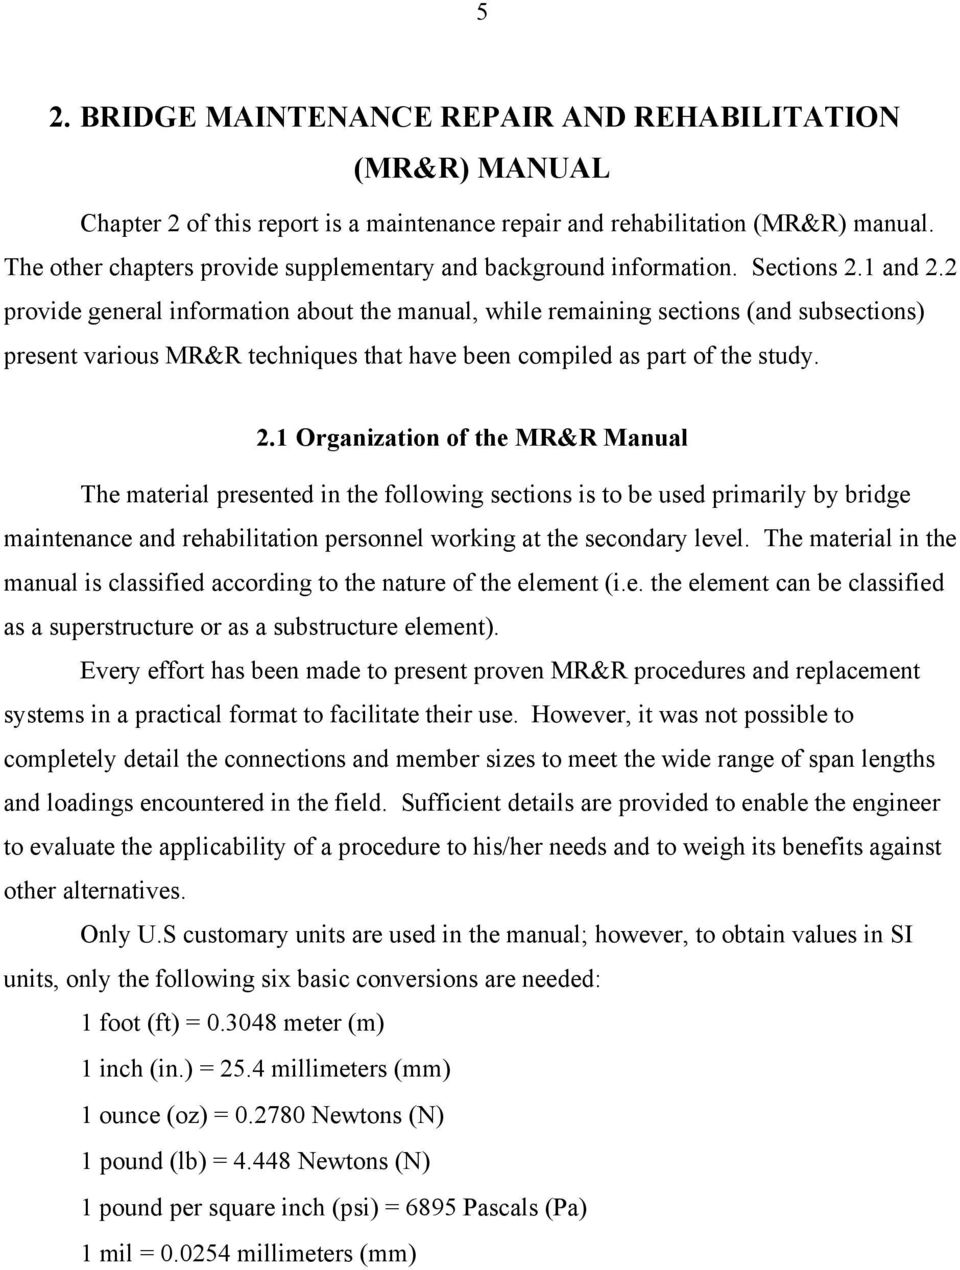 2 provide general information about the manual, while remaining sections (and subsections) present various MR&R techniques that have been compiled as part of the study. 2.